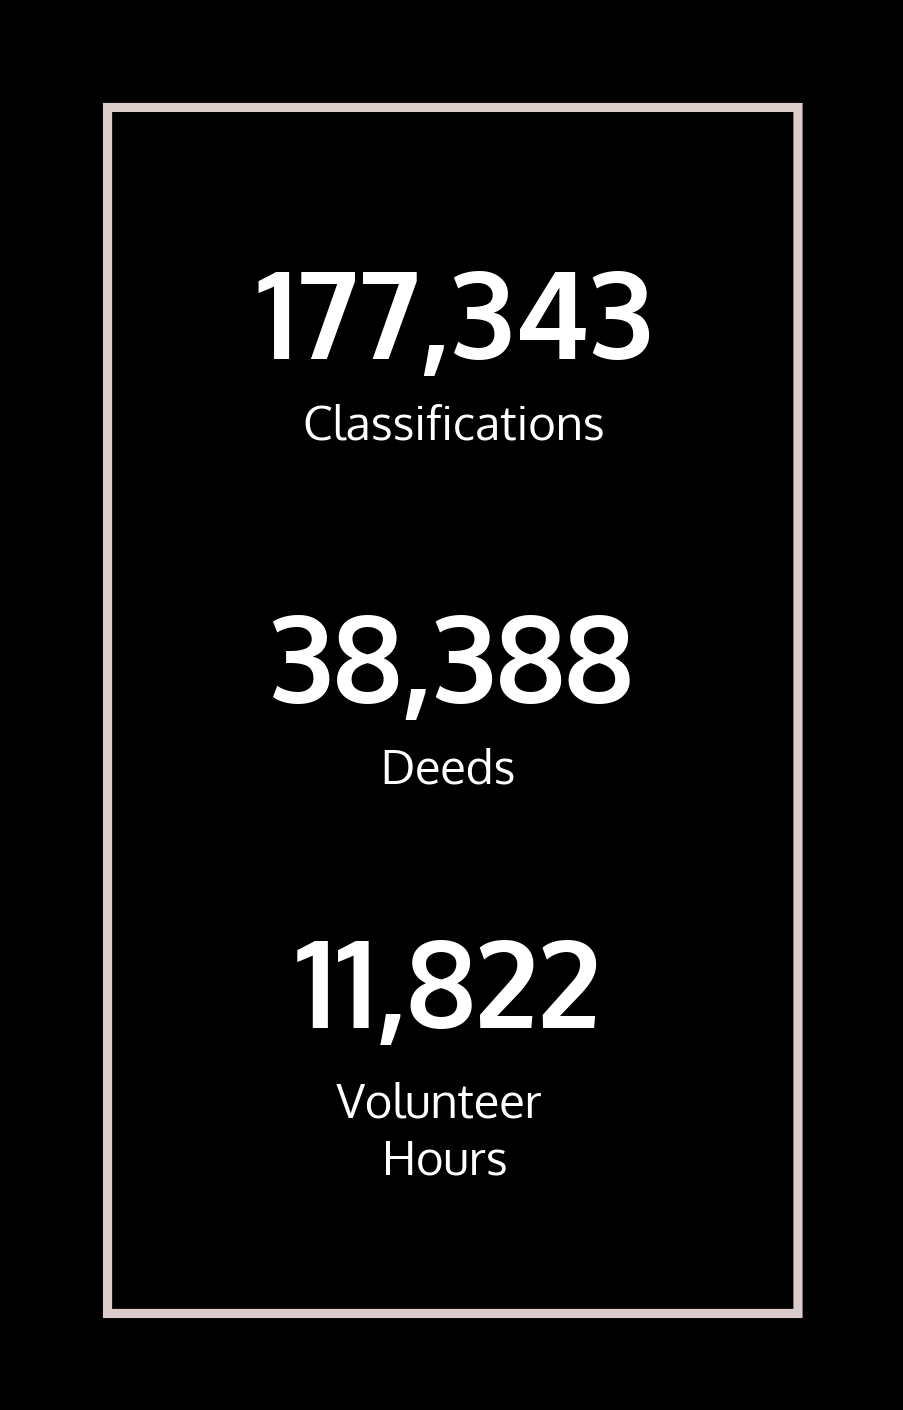 This chart shows the number of deeds that our volunteers transcribed at 38,388 as well as 177,343 classifications and 11,822 volunteer hours.